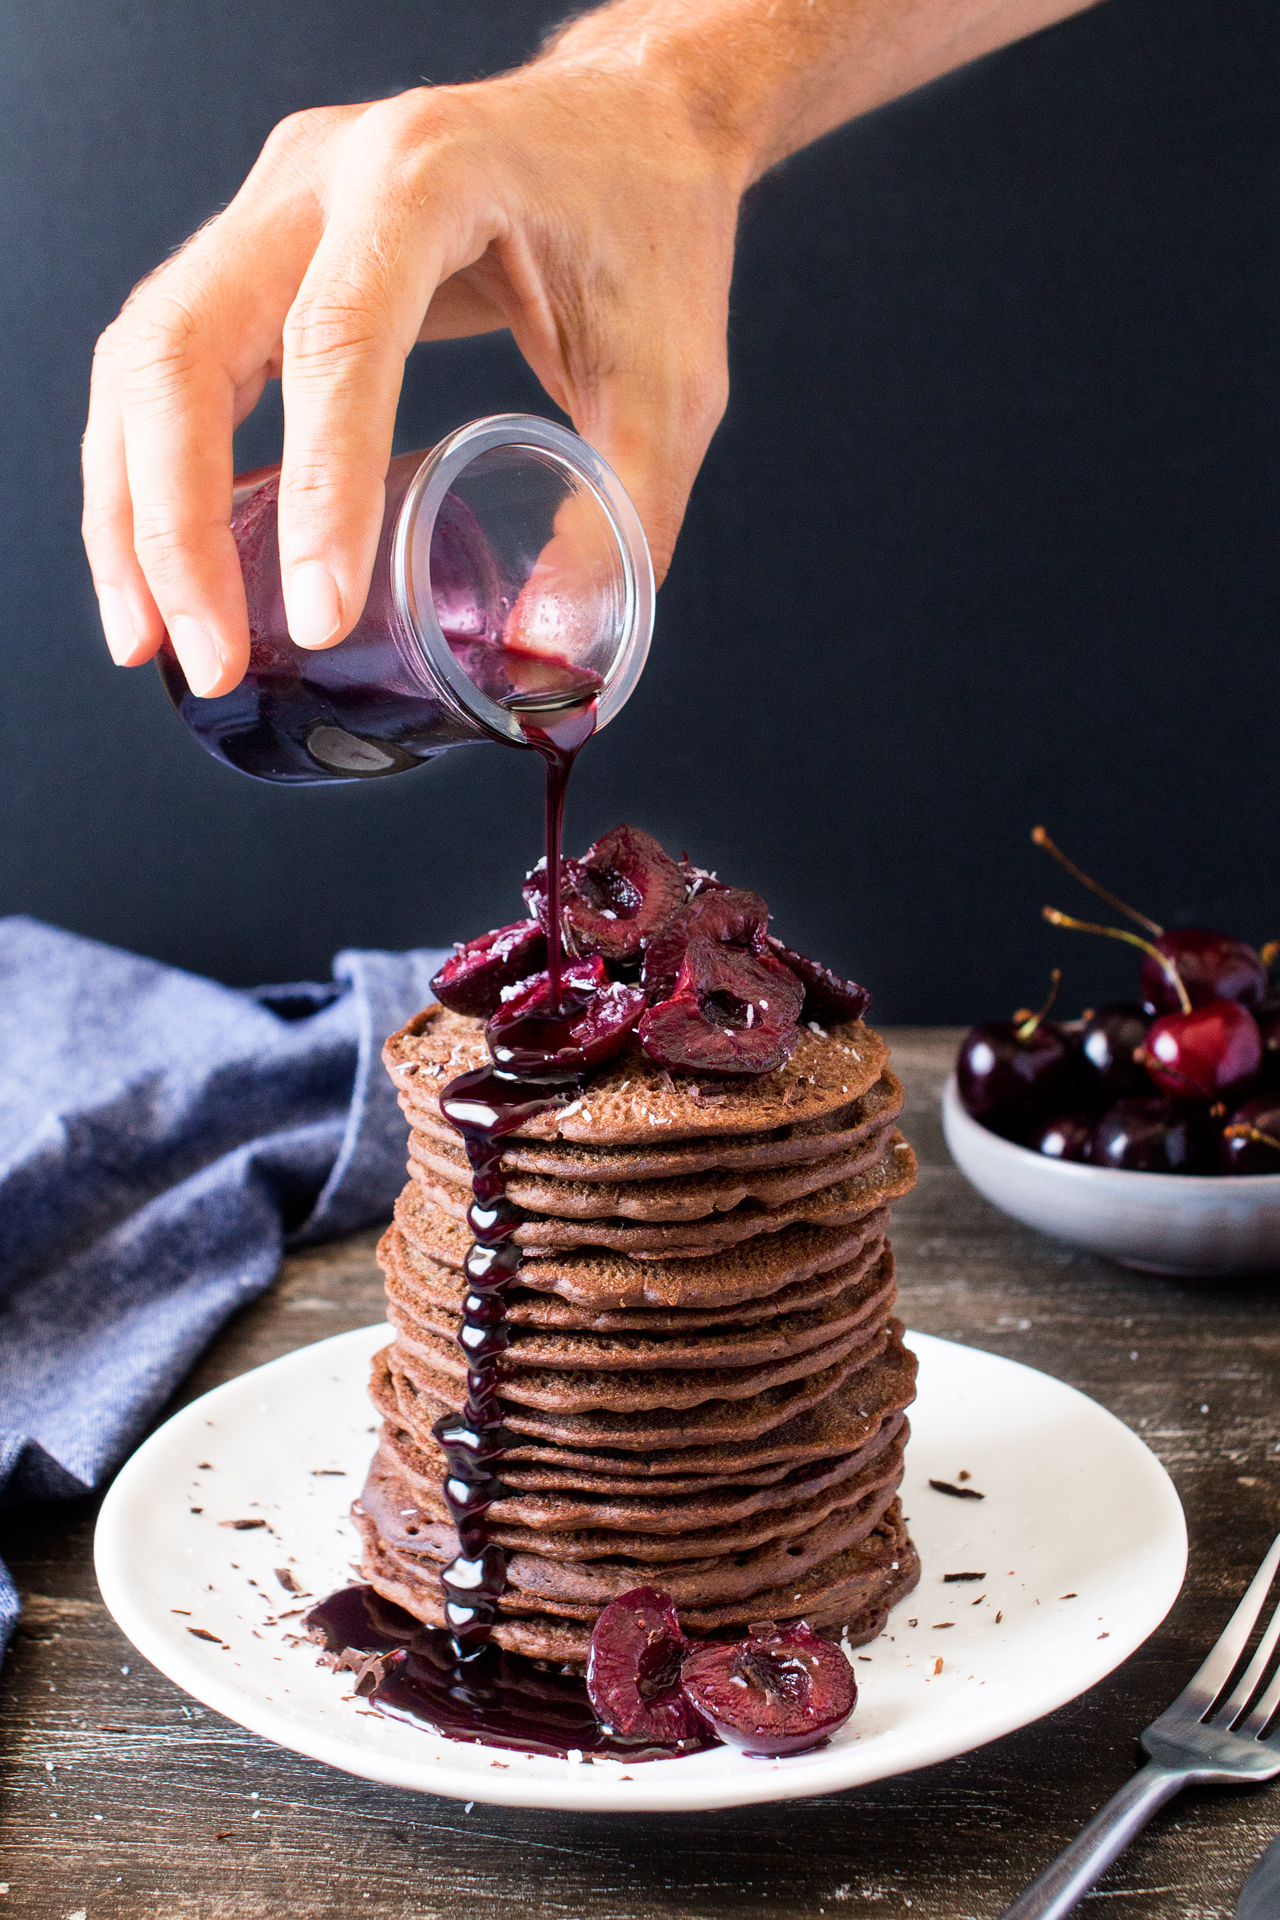 vegan chocolate pancakes with cherries pouring syrup